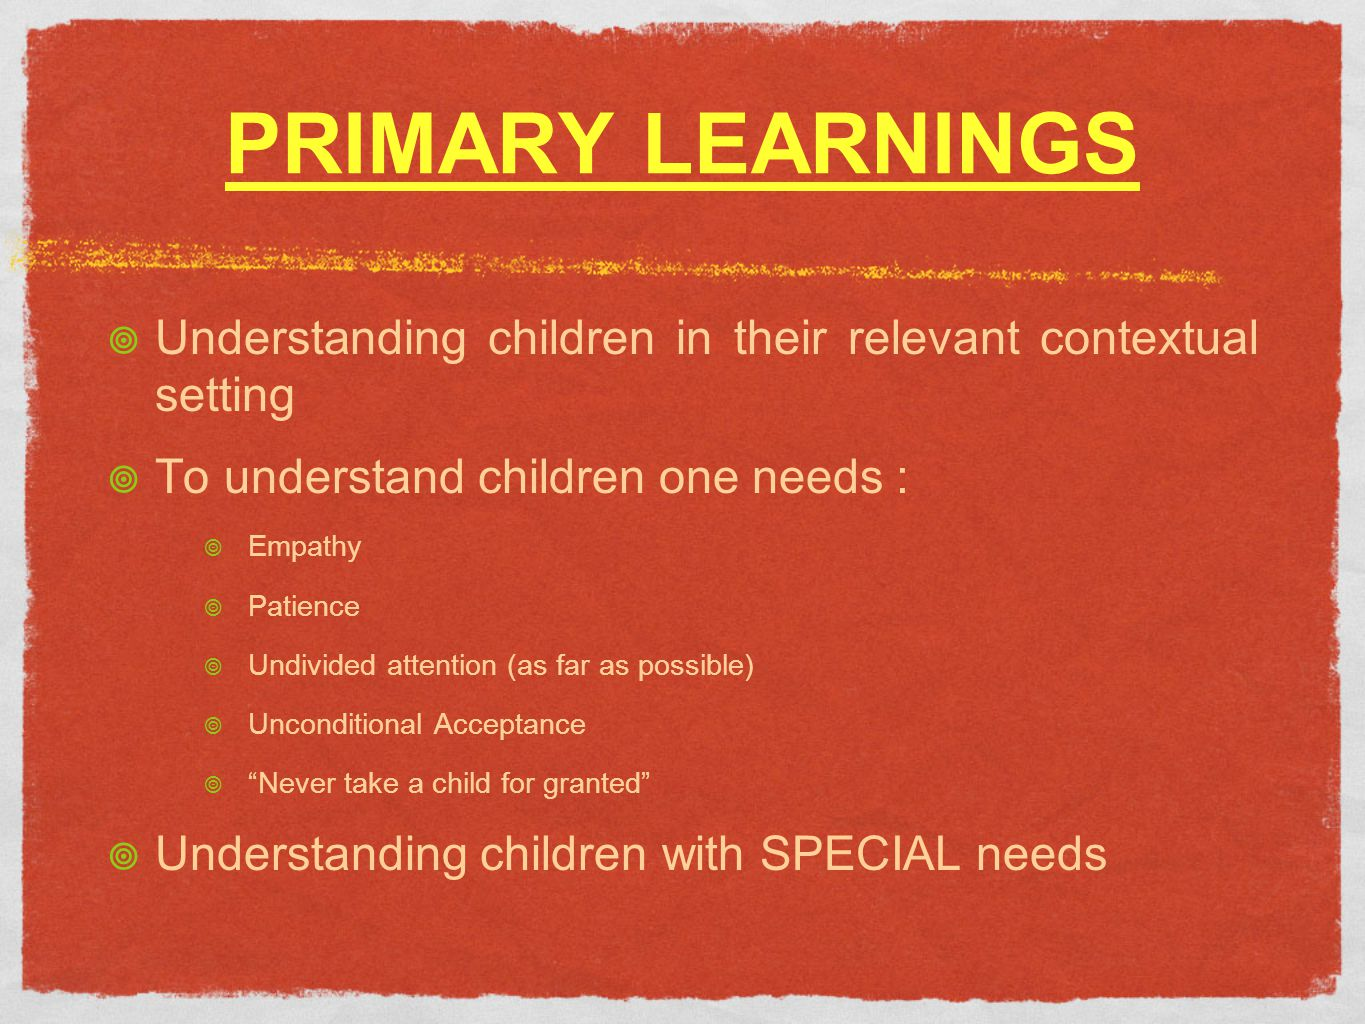 PRIMARY LEARNINGS Understanding children in their relevant contextual setting To understand children one needs : Empathy Patience Undivided attention (as far as possible) Unconditional Acceptance Never take a child for granted Understanding children with SPECIAL needs